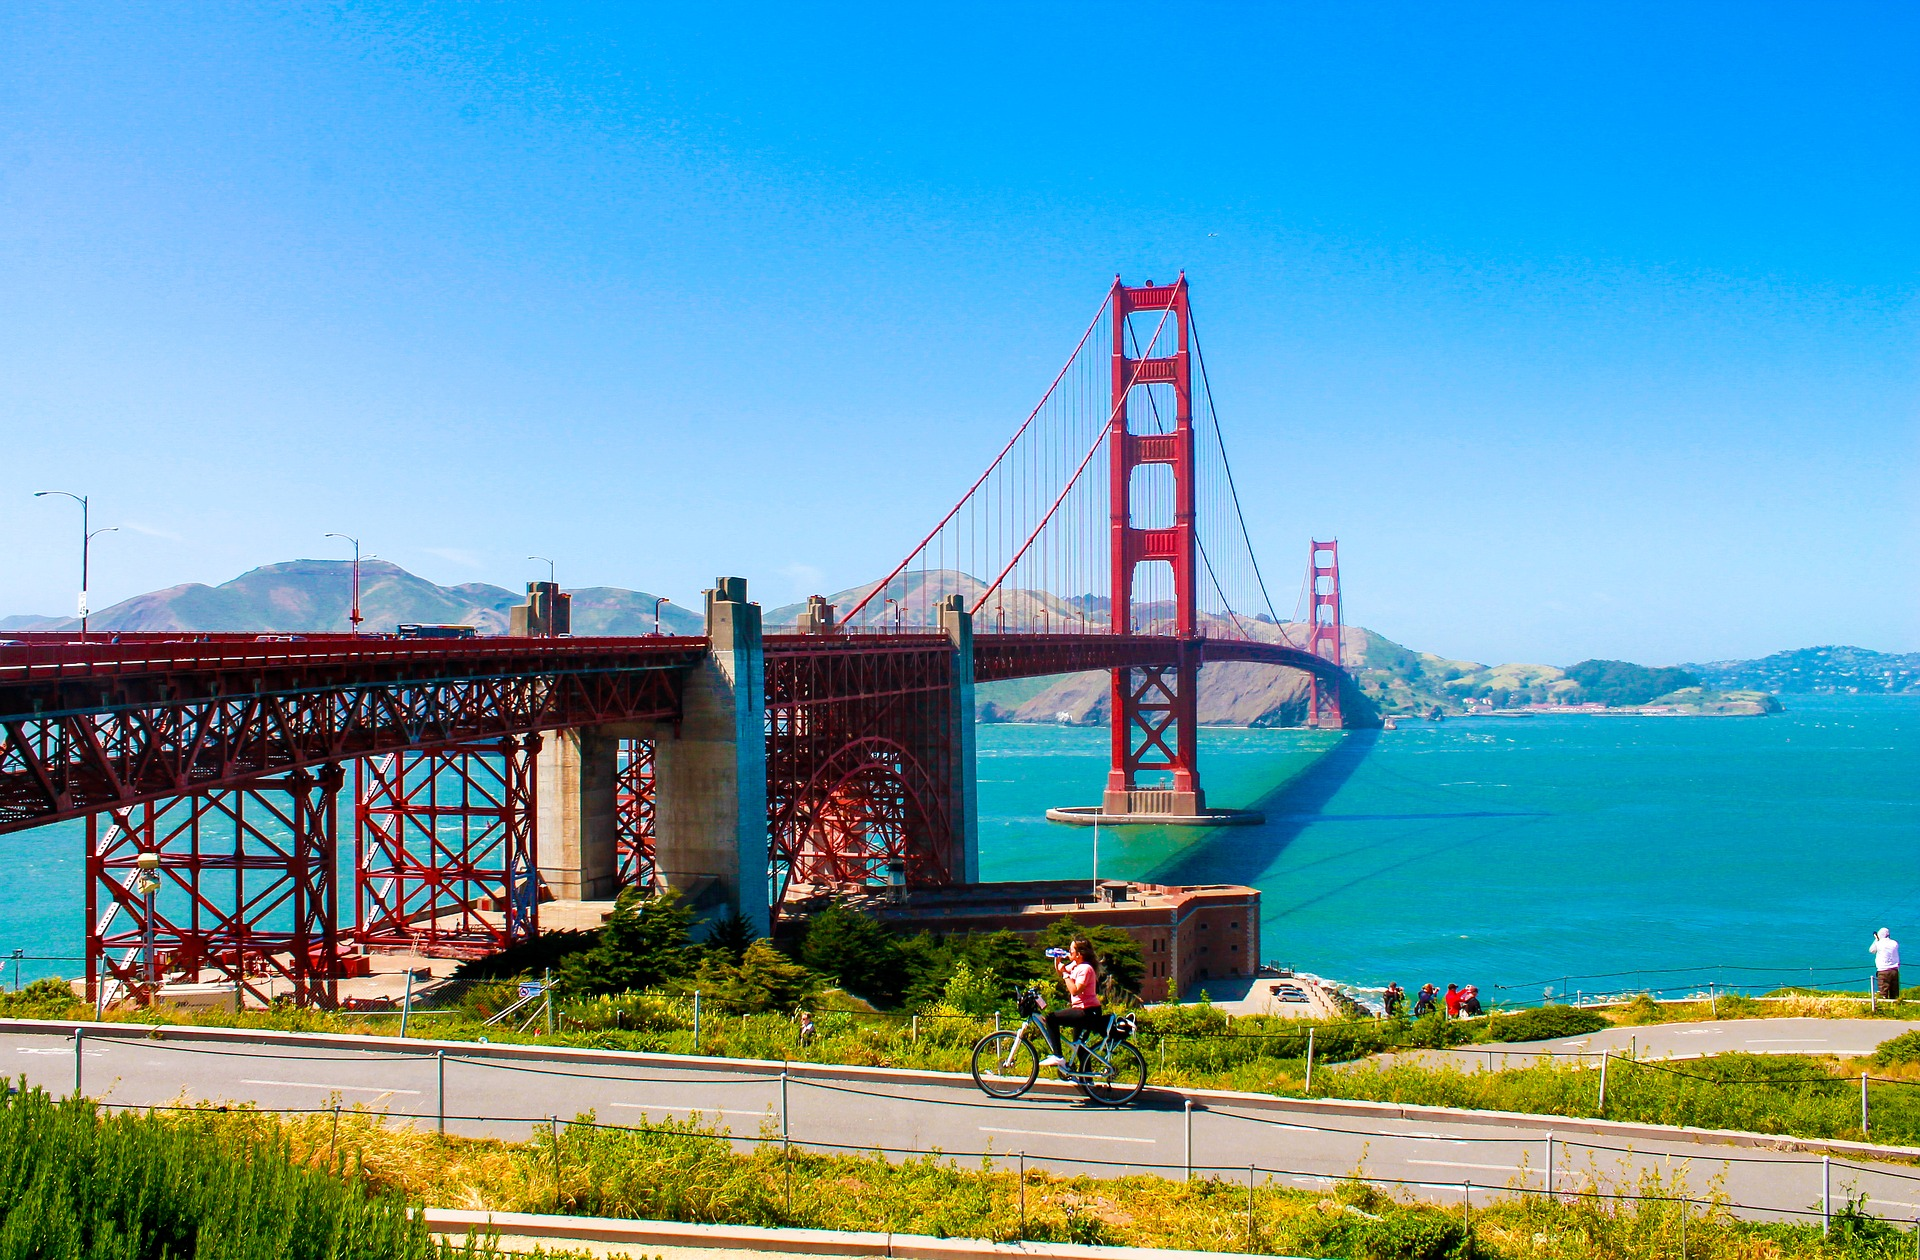 Top Attractions And Things To Do In San Francisco, California